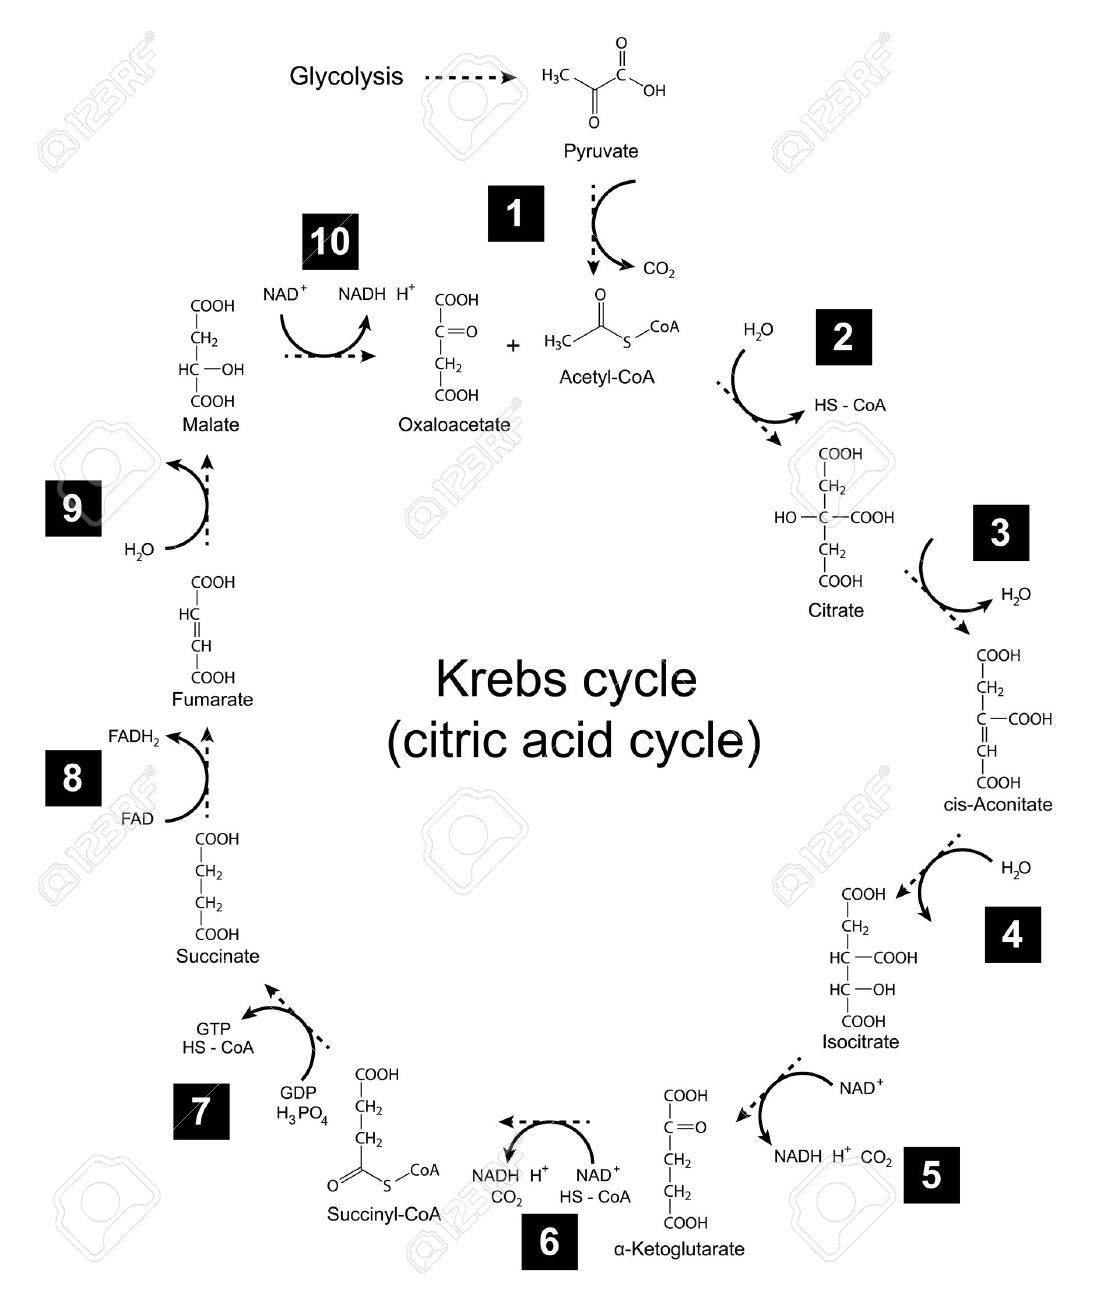 Chemical scheme of Krebs cycle - tricarboxylic acid citric cycle, 2d illustration, isolated on white background - 30656049